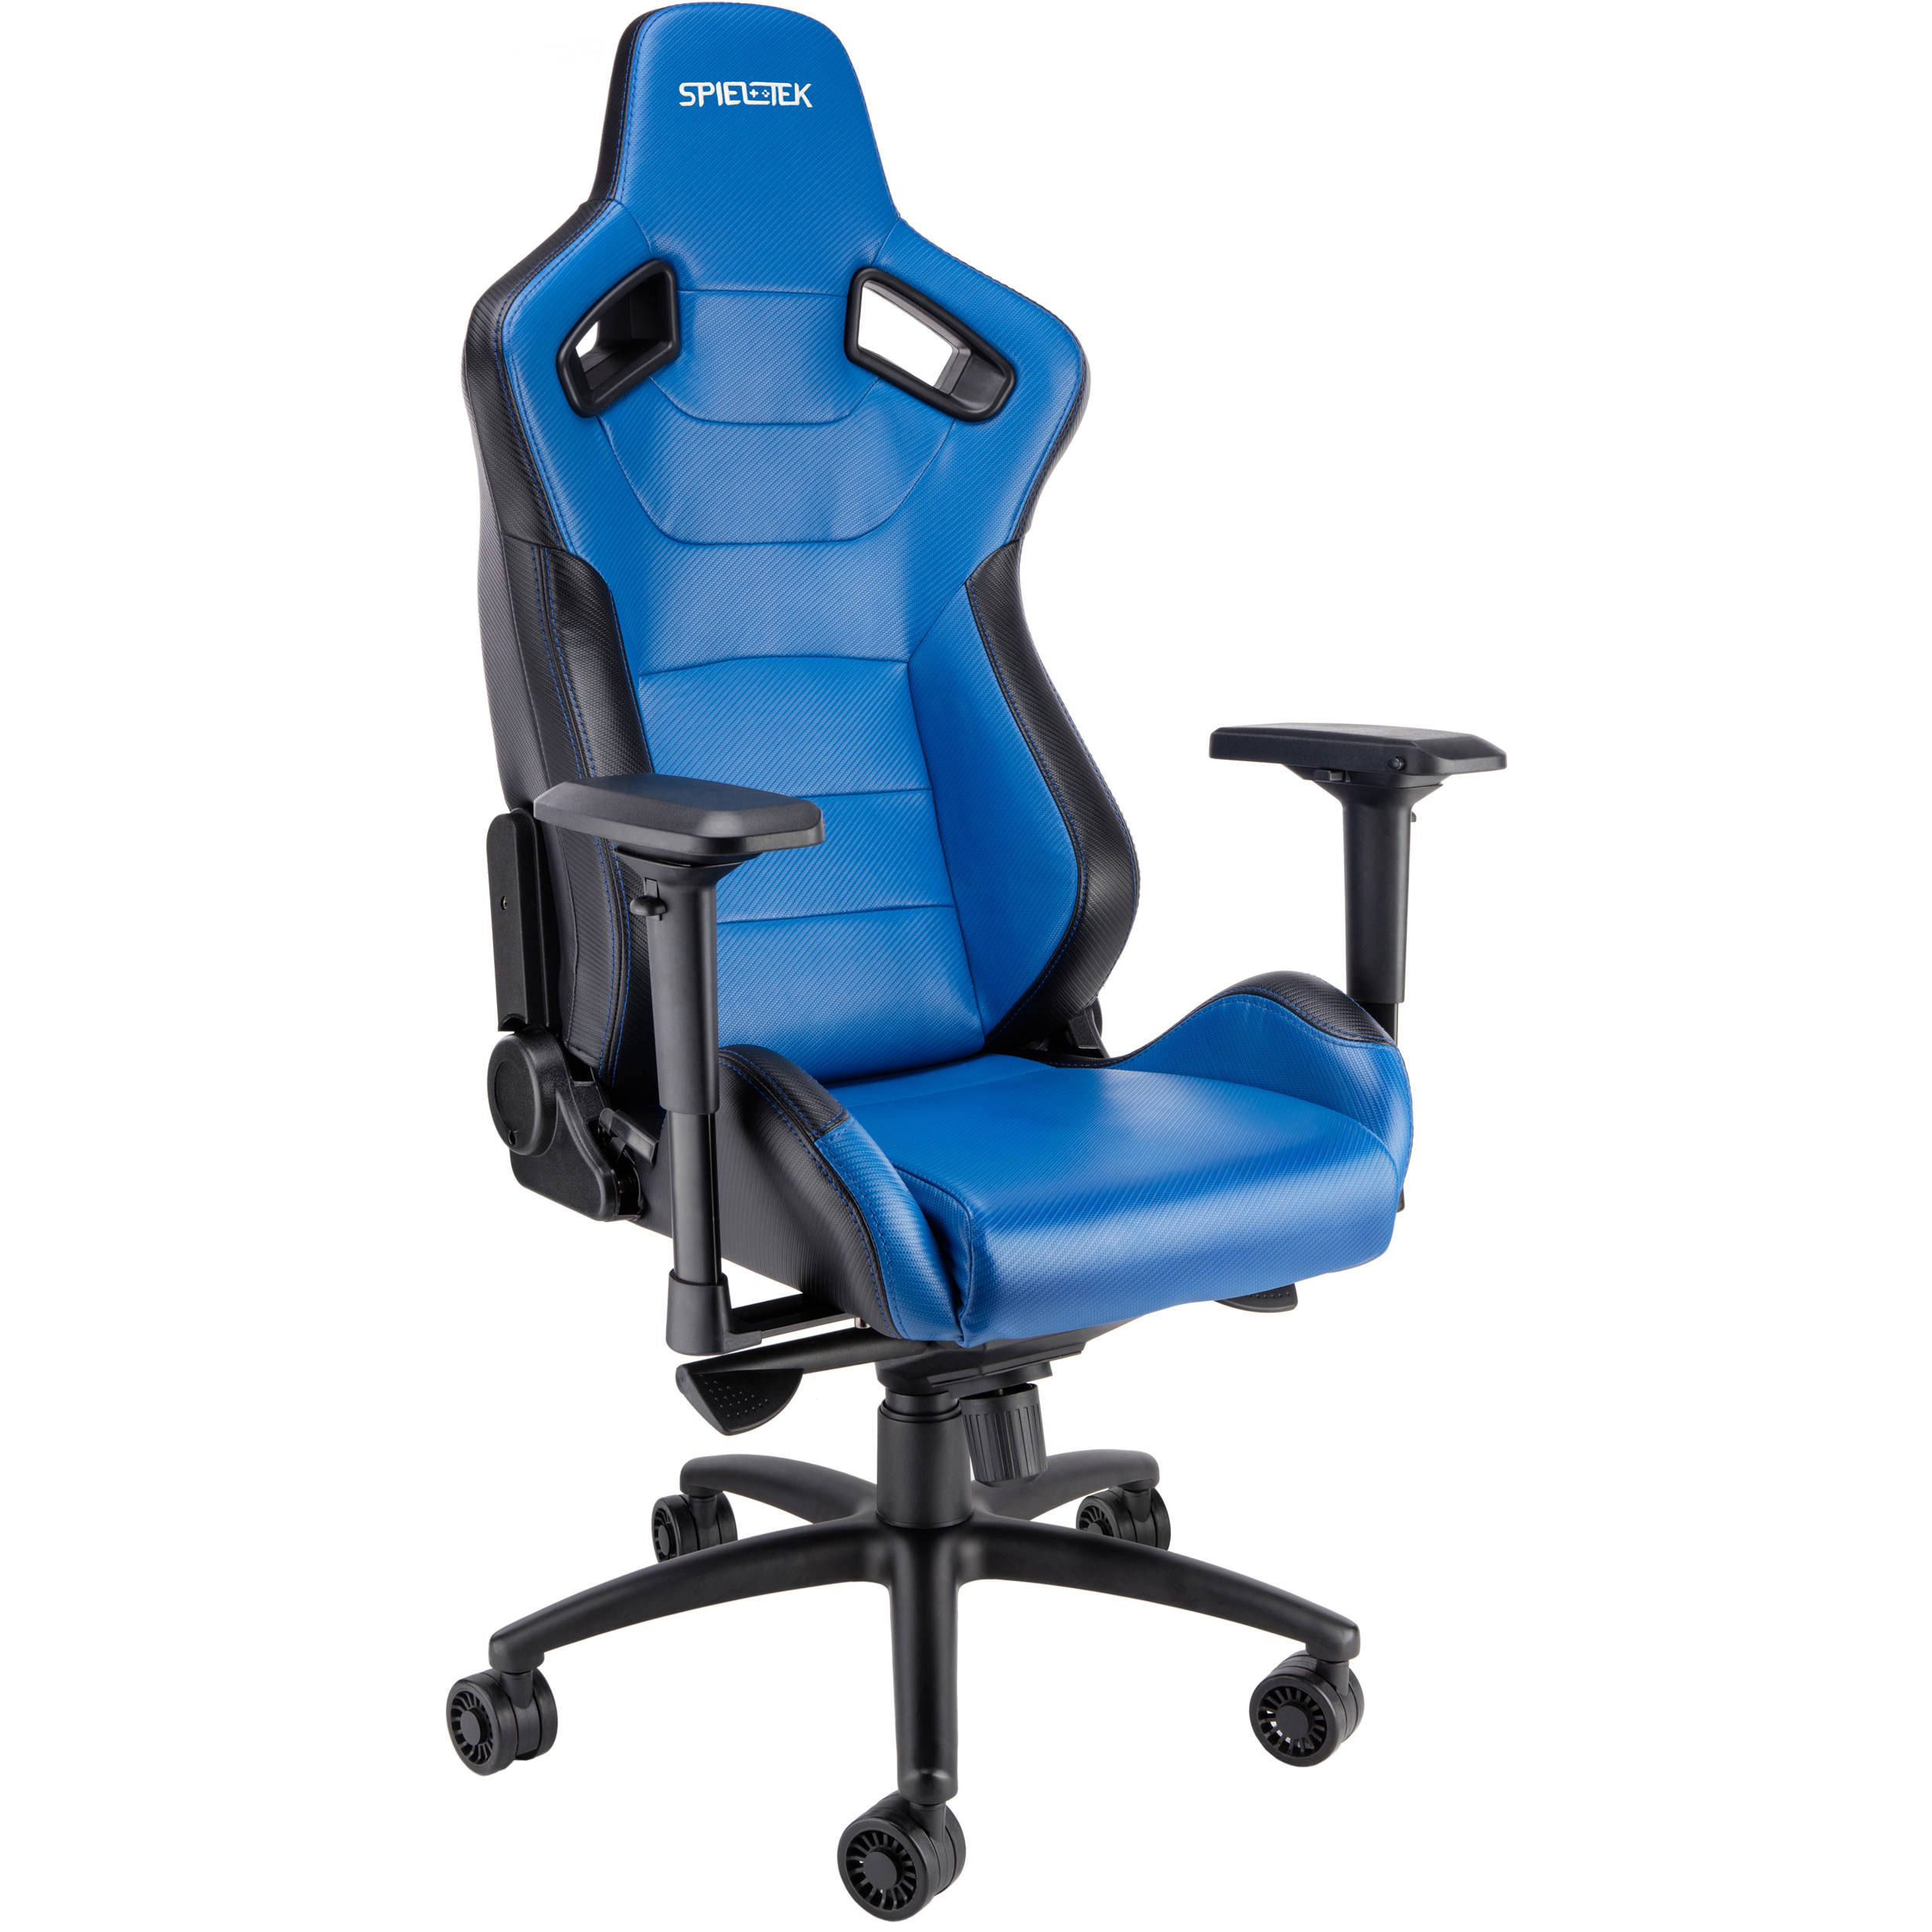 gaming chairs dining with casters uk spieltek admiral chair blue gc 321 bbl b h photo video